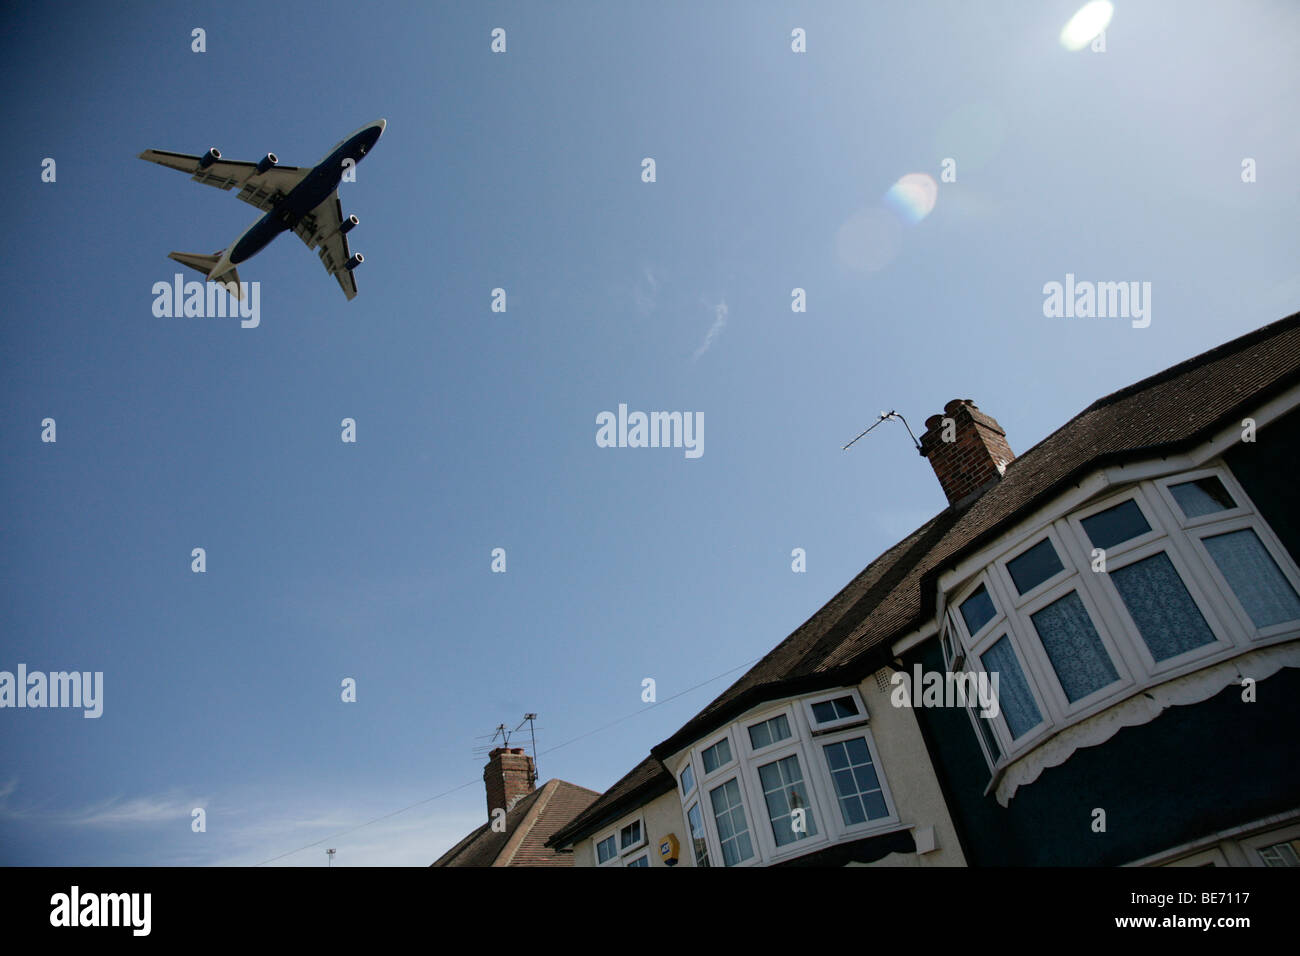 plane flying over house near heathrow airport - Stock Image